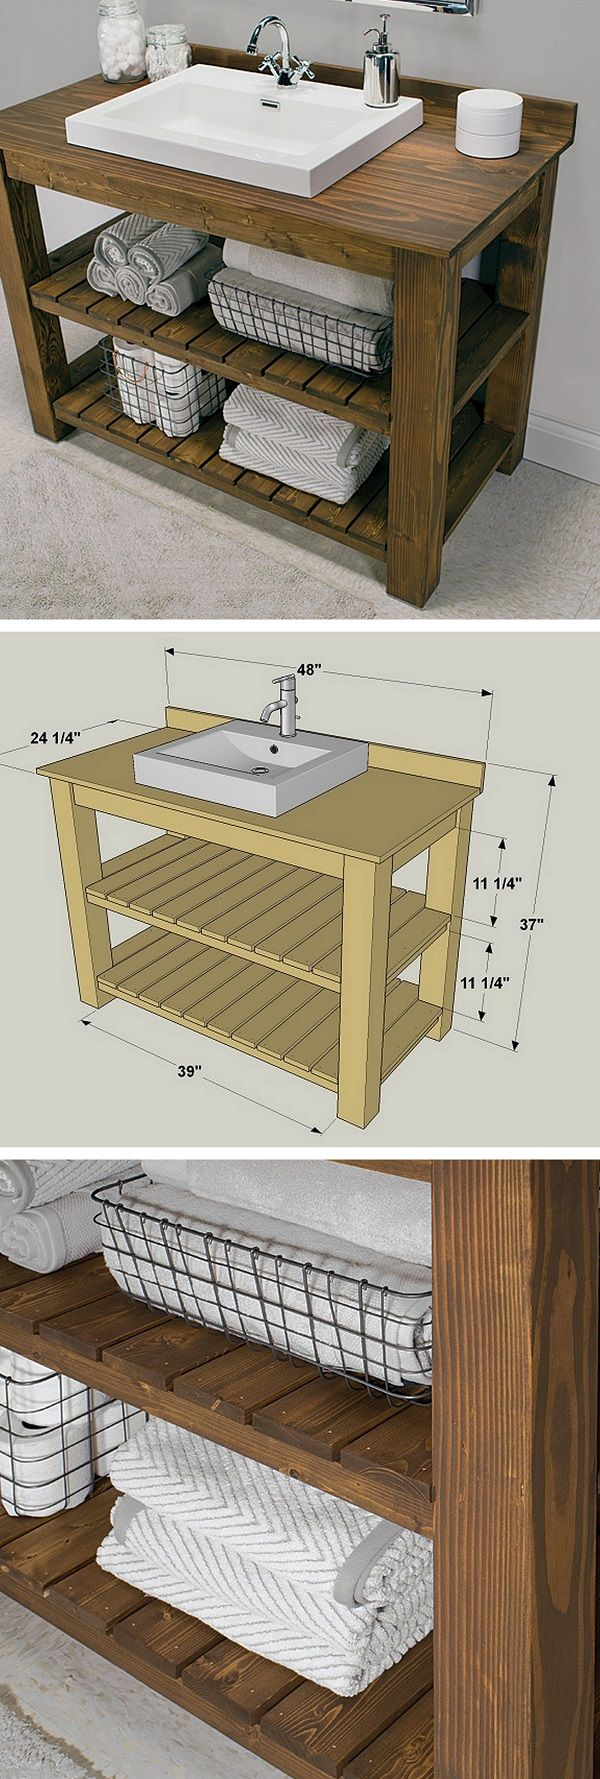 id e d coration salle de bain check out the tutorial how to make a diy rustic bathroom vanity. Black Bedroom Furniture Sets. Home Design Ideas